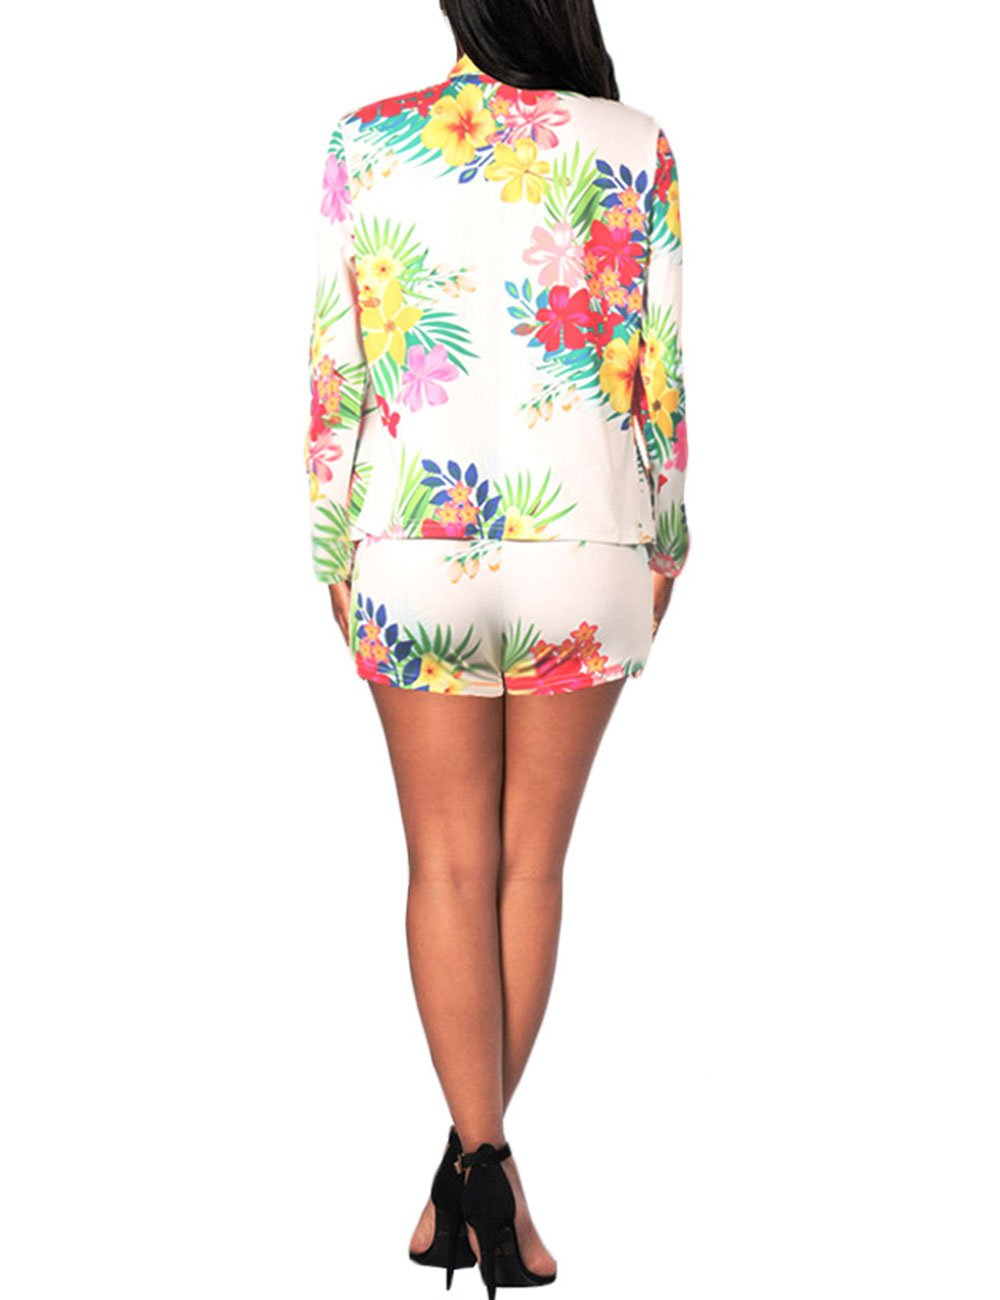 Women Floral Print Casual Two Pieces Suit Set Long Sleeve Blazer Shorts Outfit M by Angsuttc (Image #2)